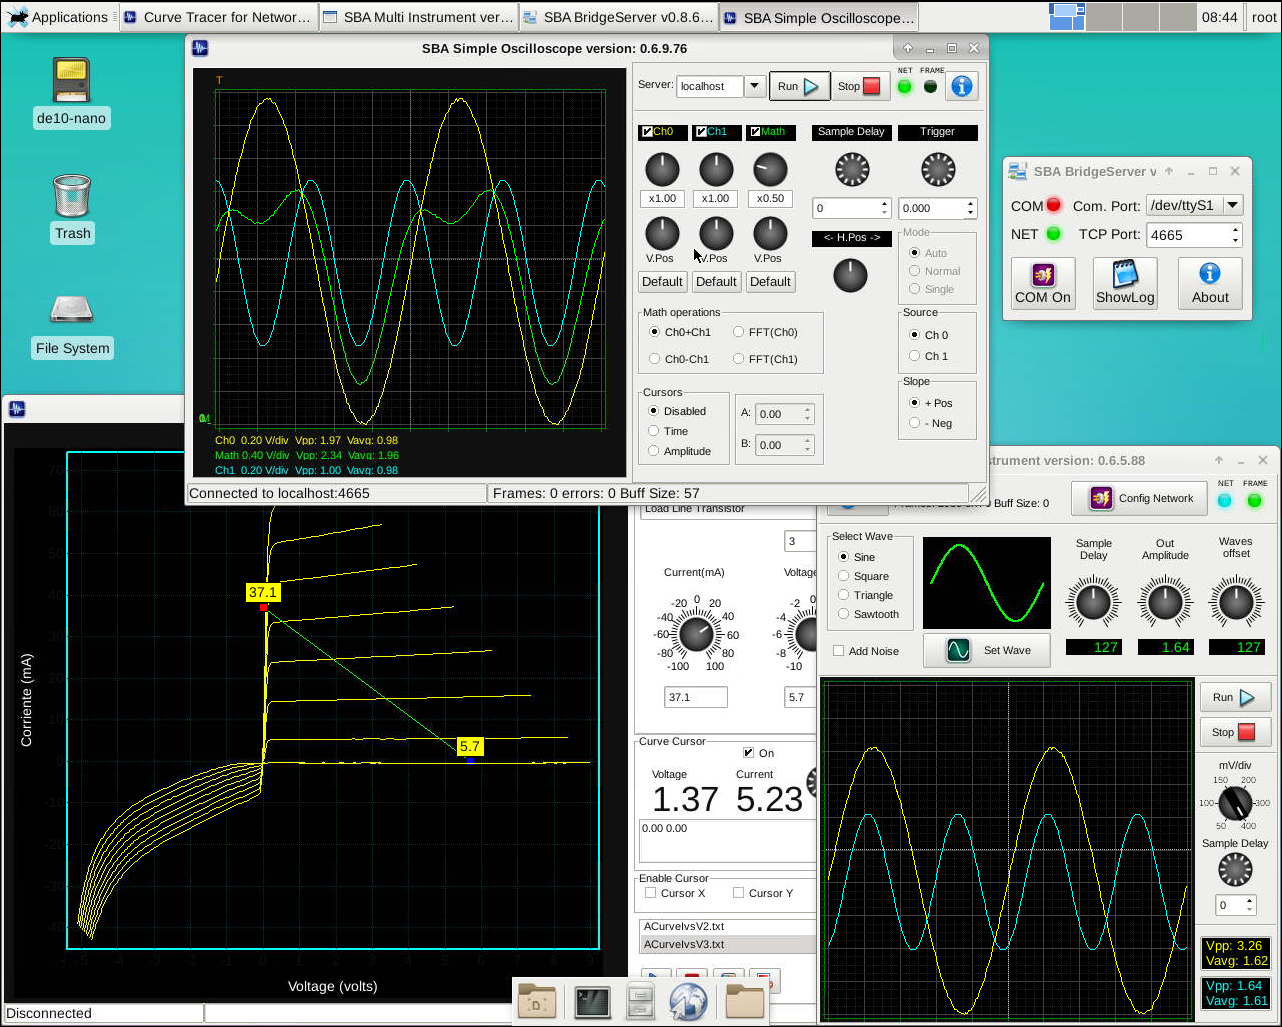 Innovatefpga Americas As033 Reconfigurable Virtual Build A Simple Transistor Curve Tracer Using An Arduino And Processing Fig 11 Instruments The Instrumentation Server Running In Angstrom Gnu Linux Of De10 Nano